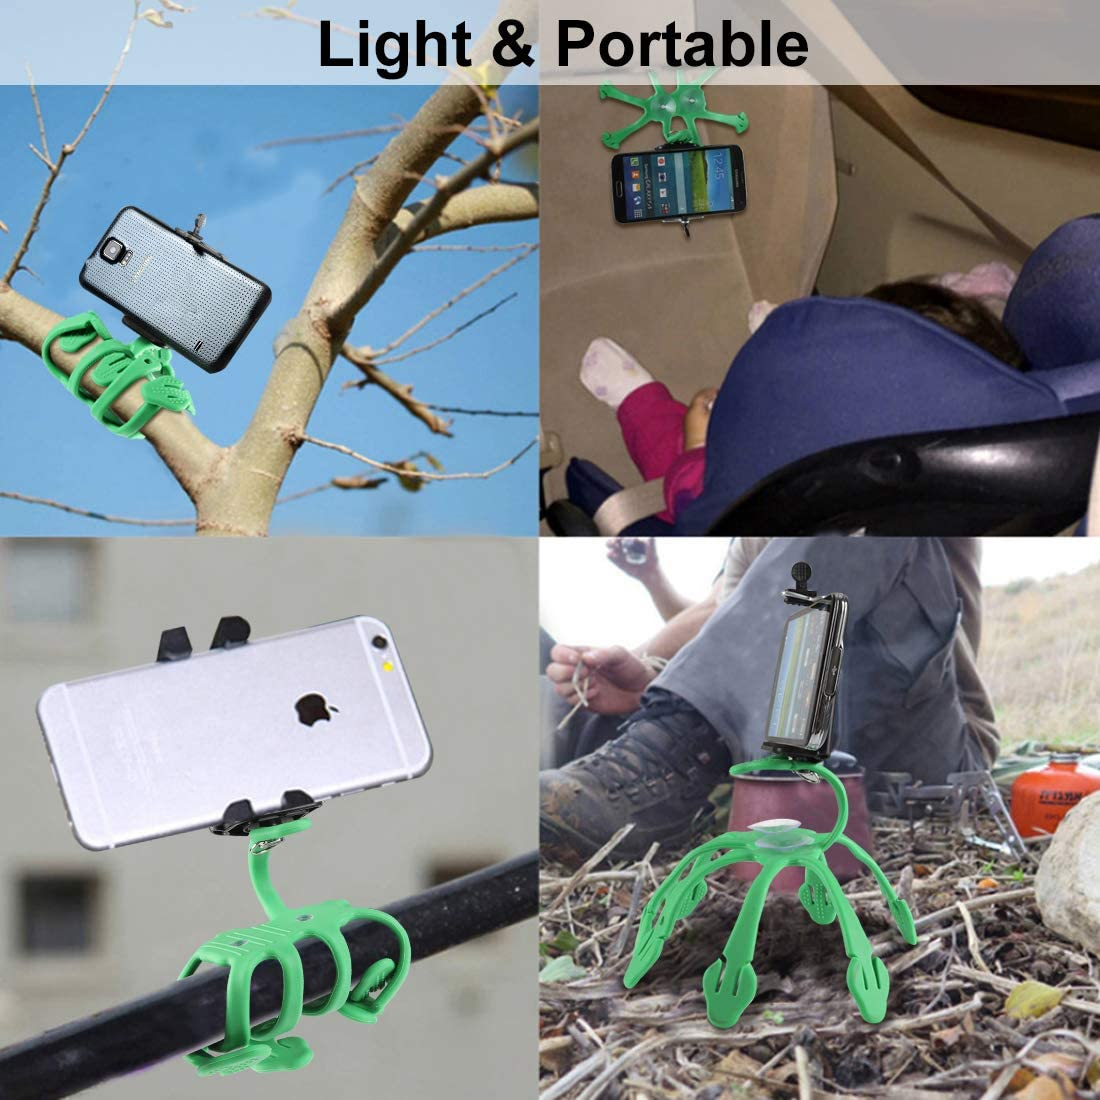 Record video Flexible Octopus Tripod Mobile Phone Stand Support Selfie Bluetooth Remote Compatible with Apple/&Android Devices Portable Phone tripod with Remote Interview Green Tripod for iPhone